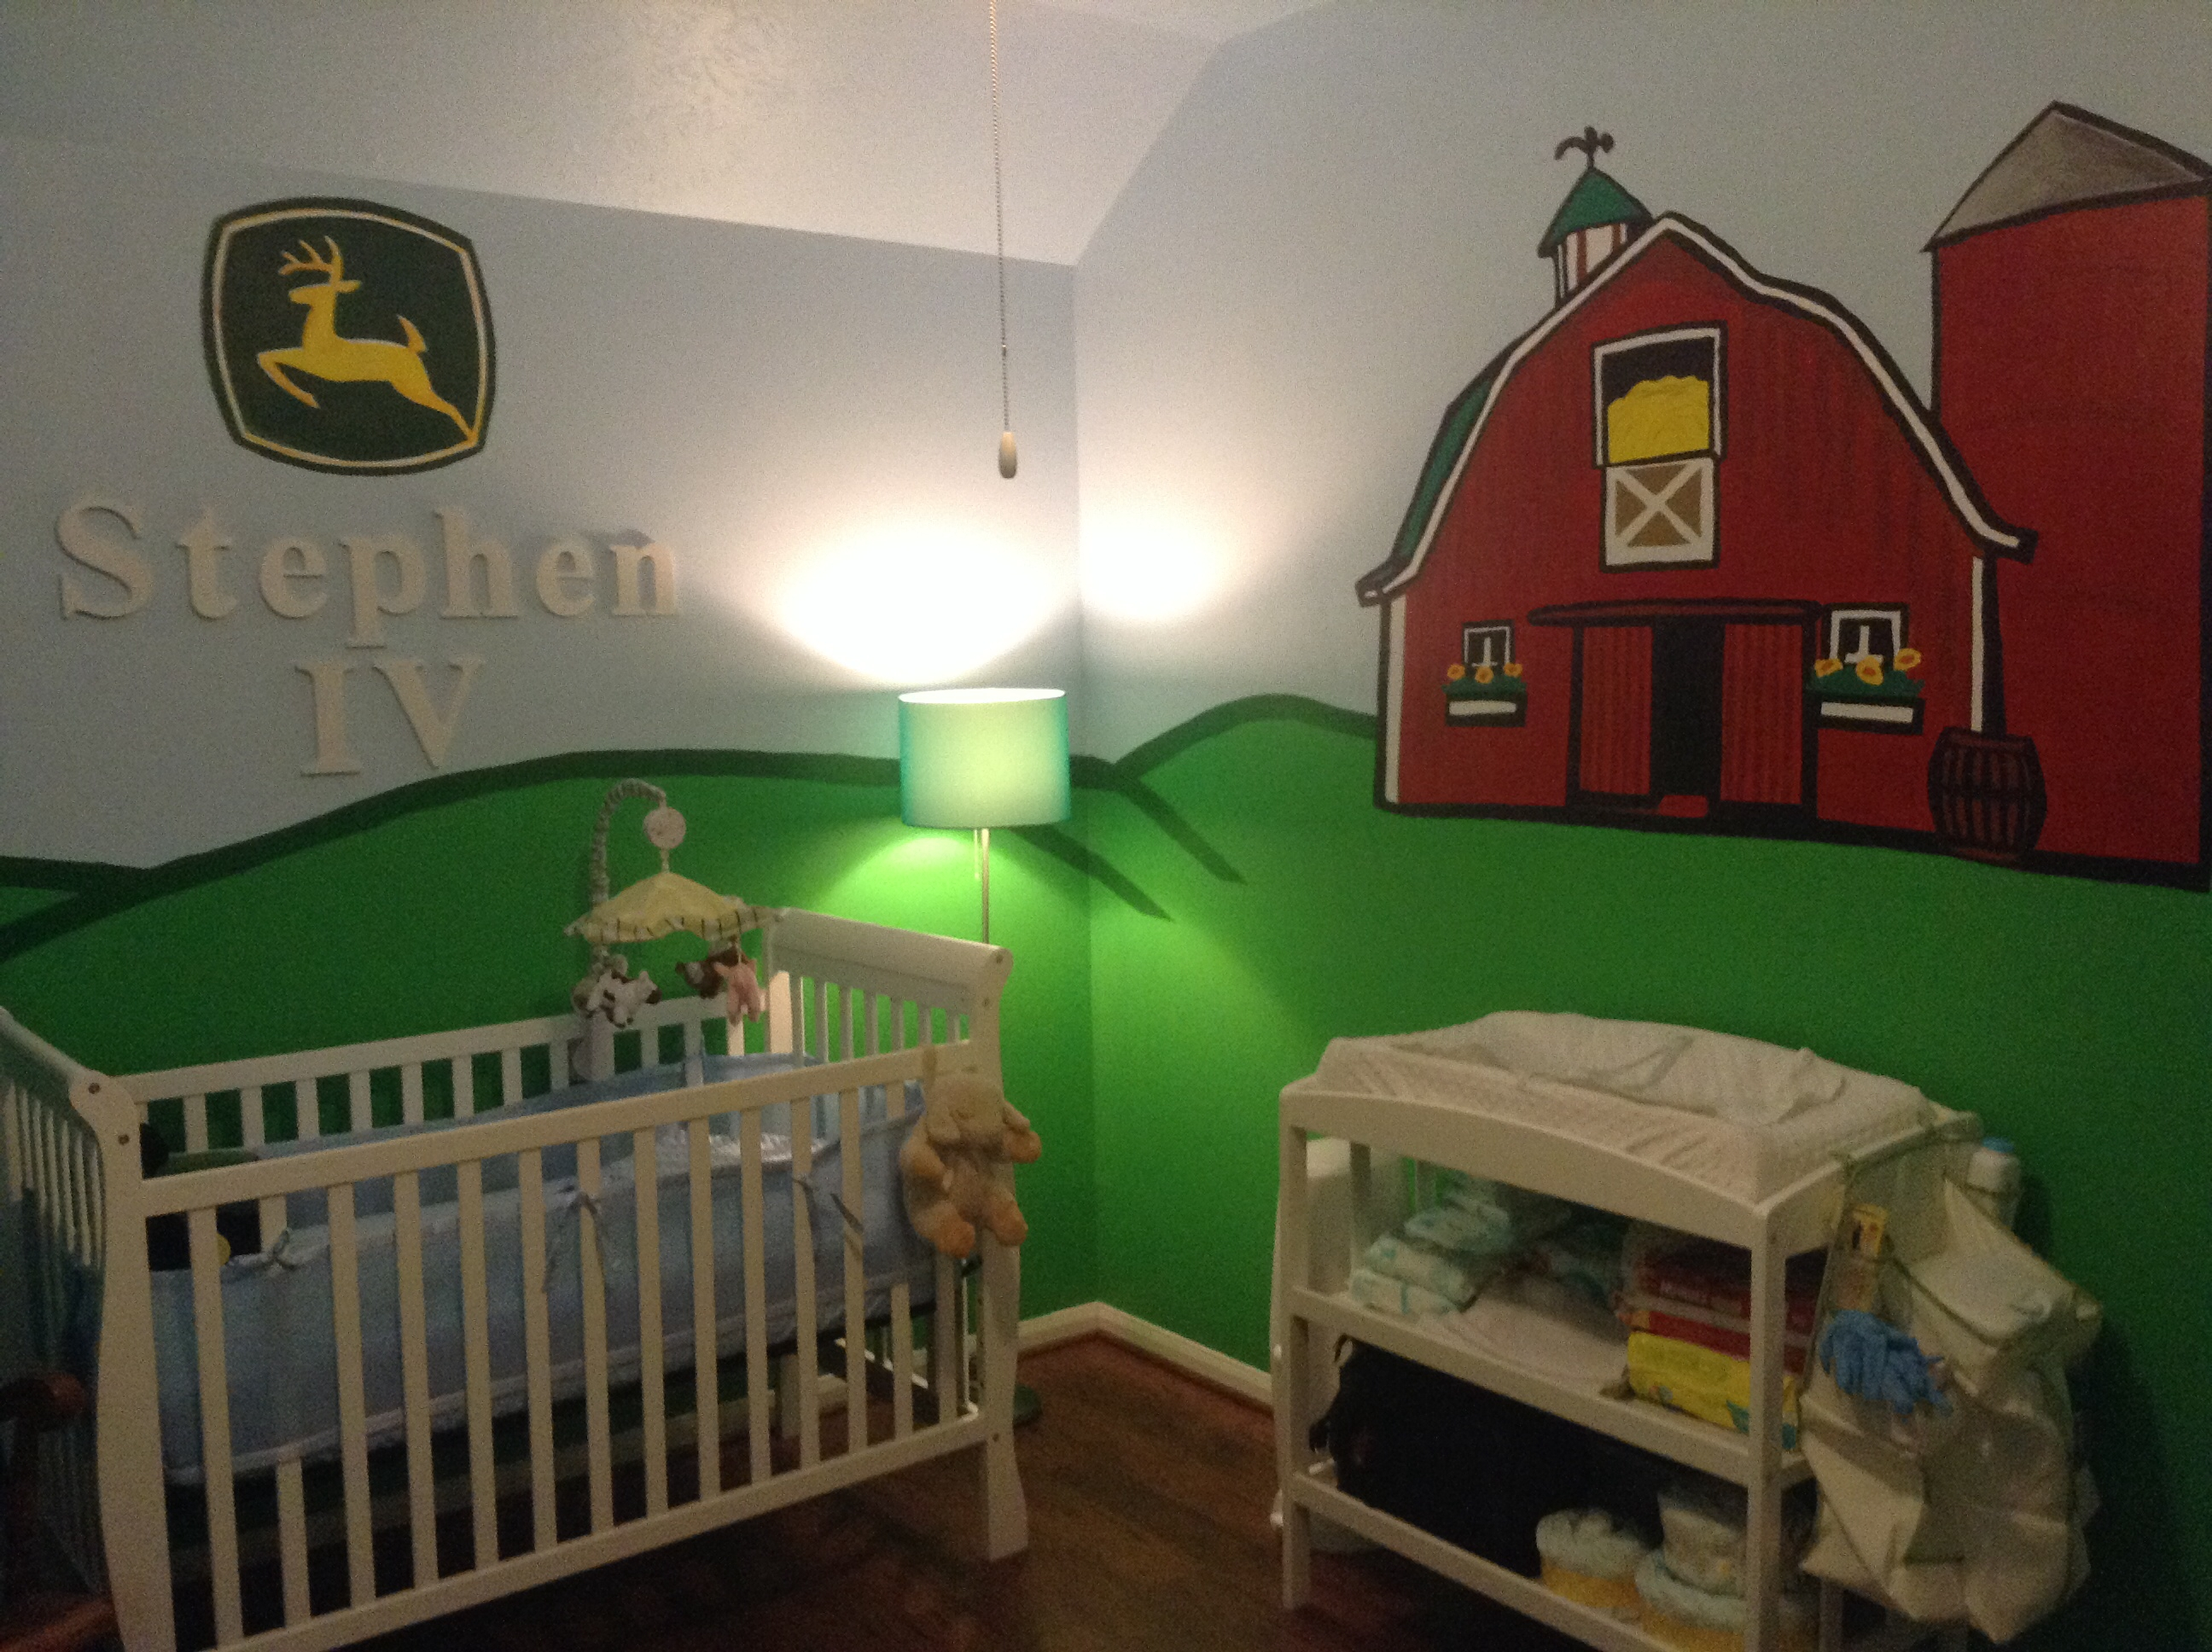 John Deere Bedding | John Deere Baby Crib Bedding | John Deere Bedding for Toddlers